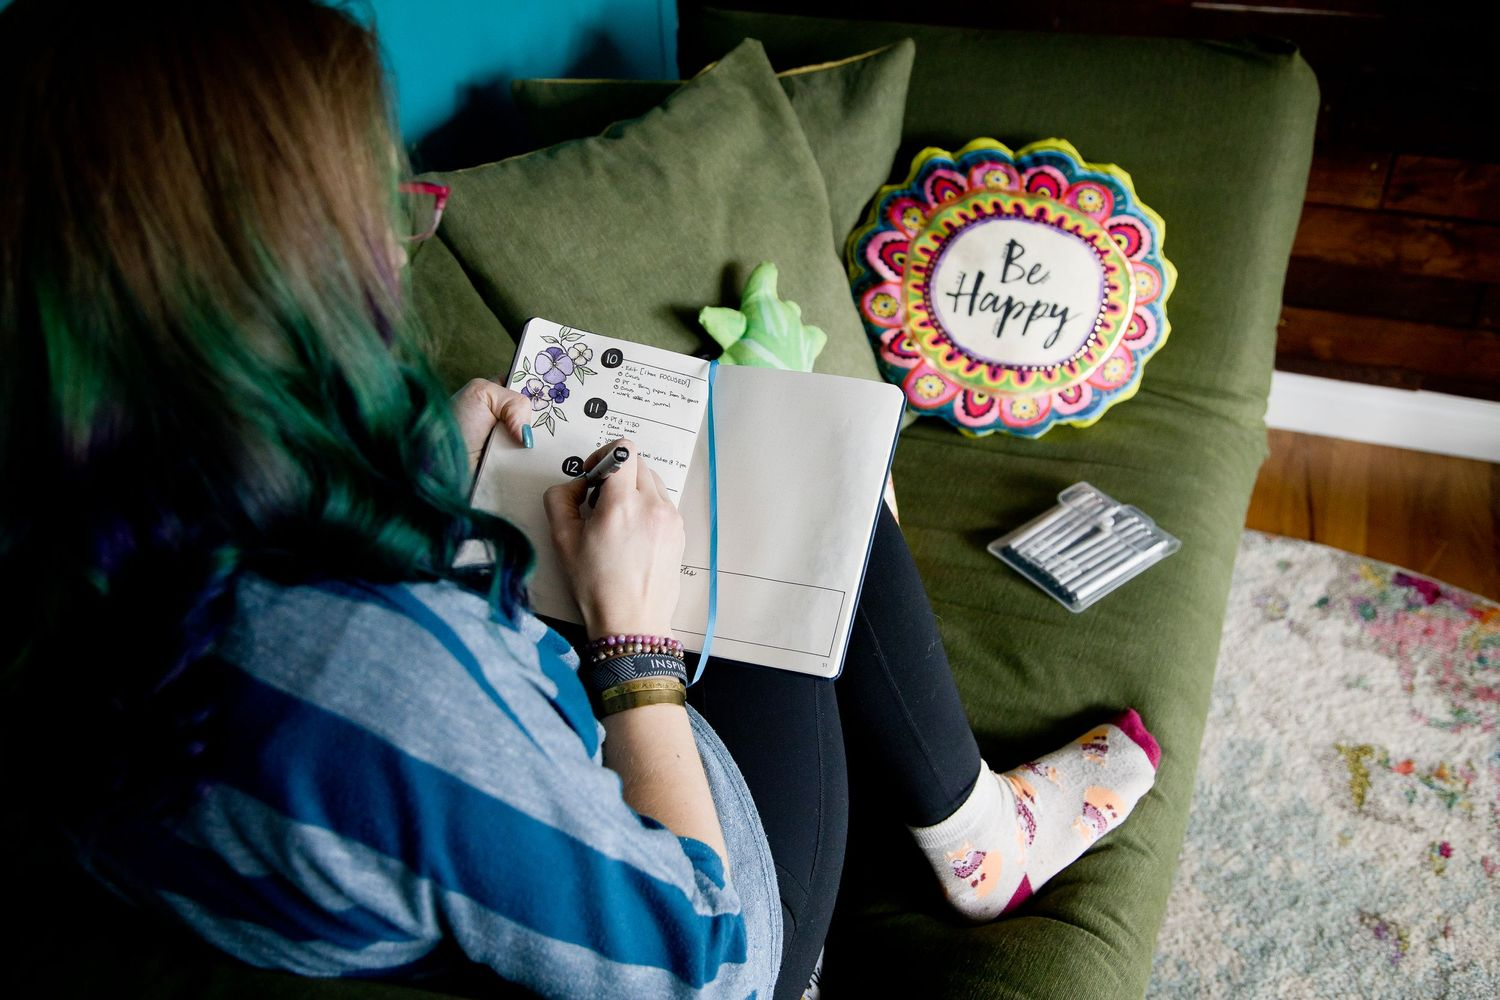 woman owned lifestyle branding session bullet journaling on couch at home in Auburn WA